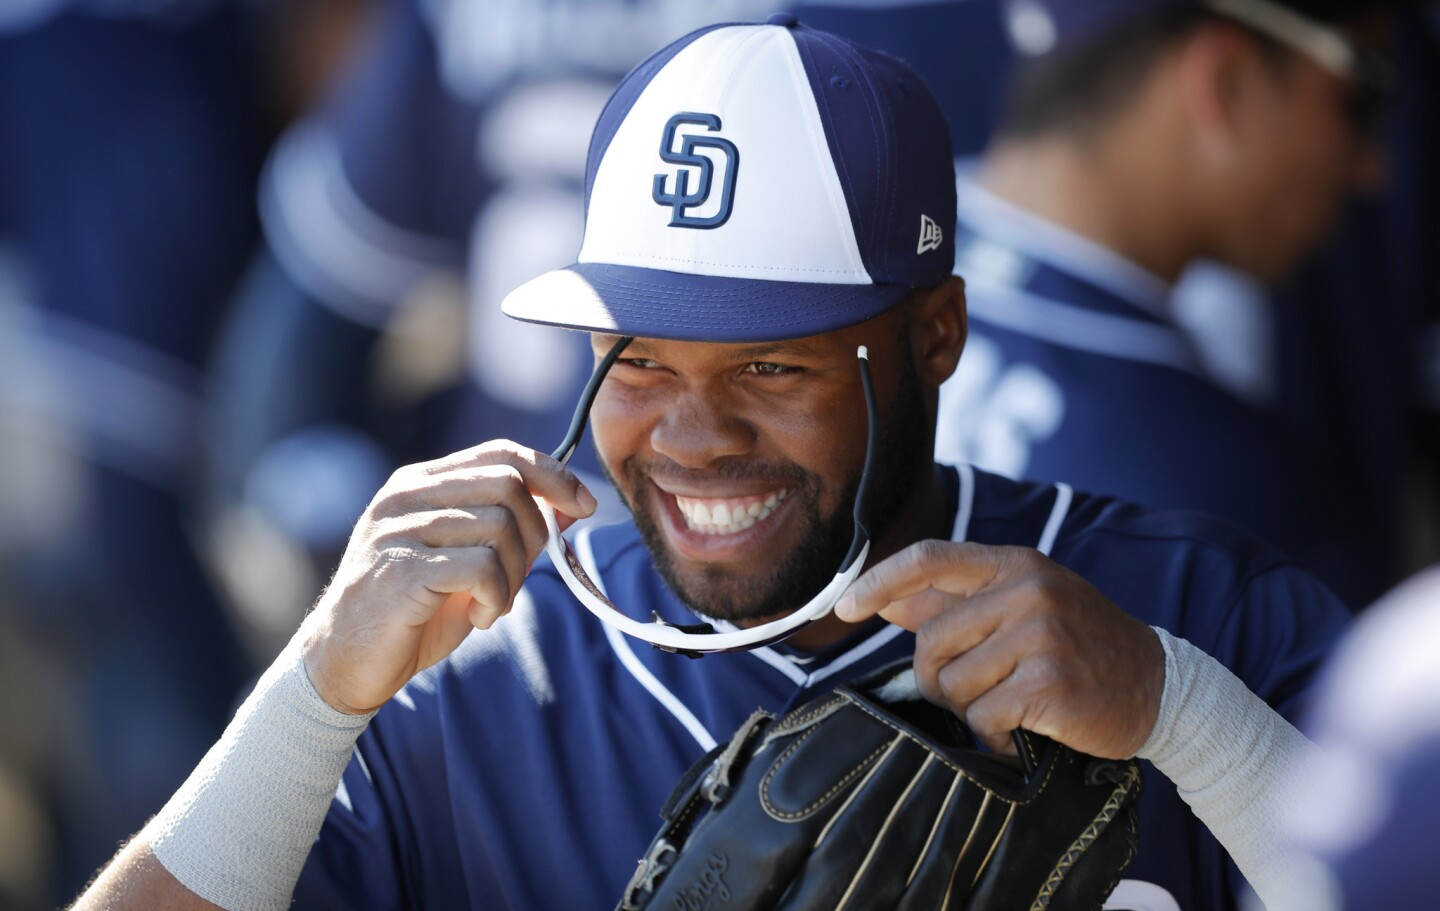 San Diego Padres' Manuel Margot walks in the dugout during the first inning of a spring training baseball game against the Texas Rangers, Thursday, March 1, 2018, in Surprise, Ariz. (AP Photo/Charlie Neibergall)